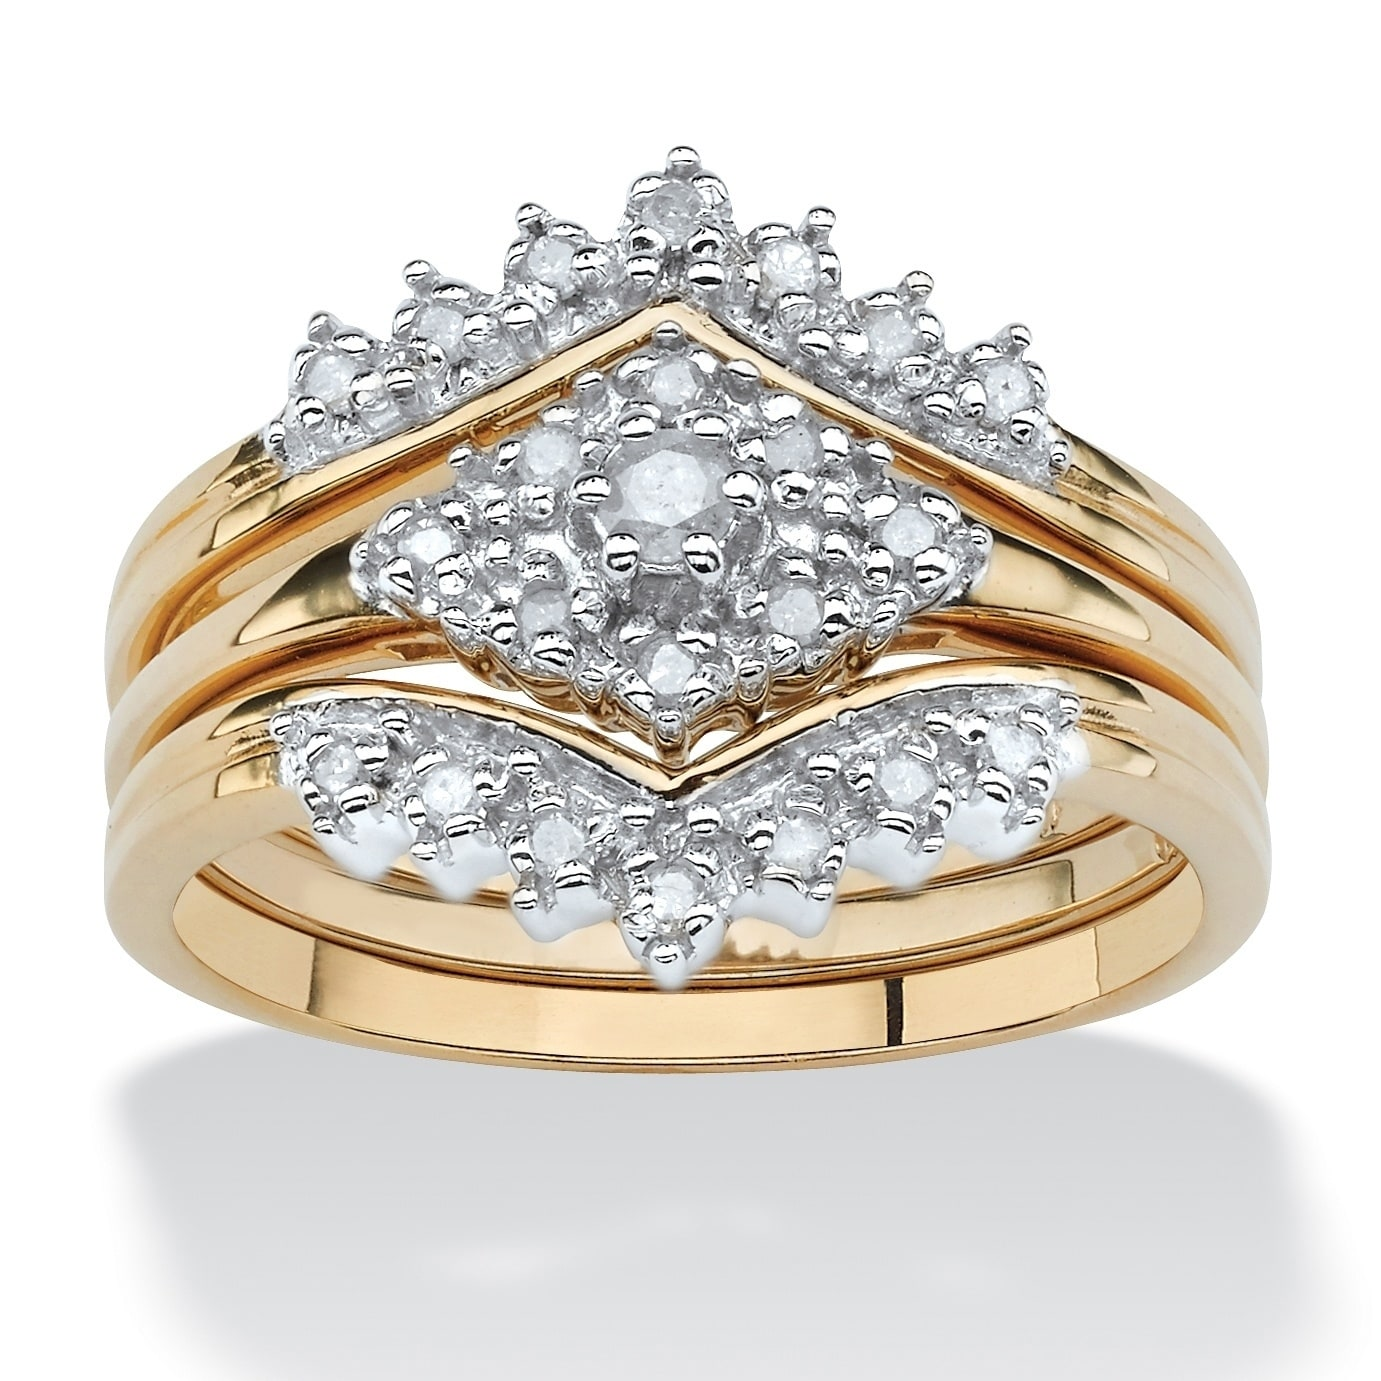 Gold Over Sterling Silver Diamond 3 Piece Bridal Ring Set 1 4 Cttw White